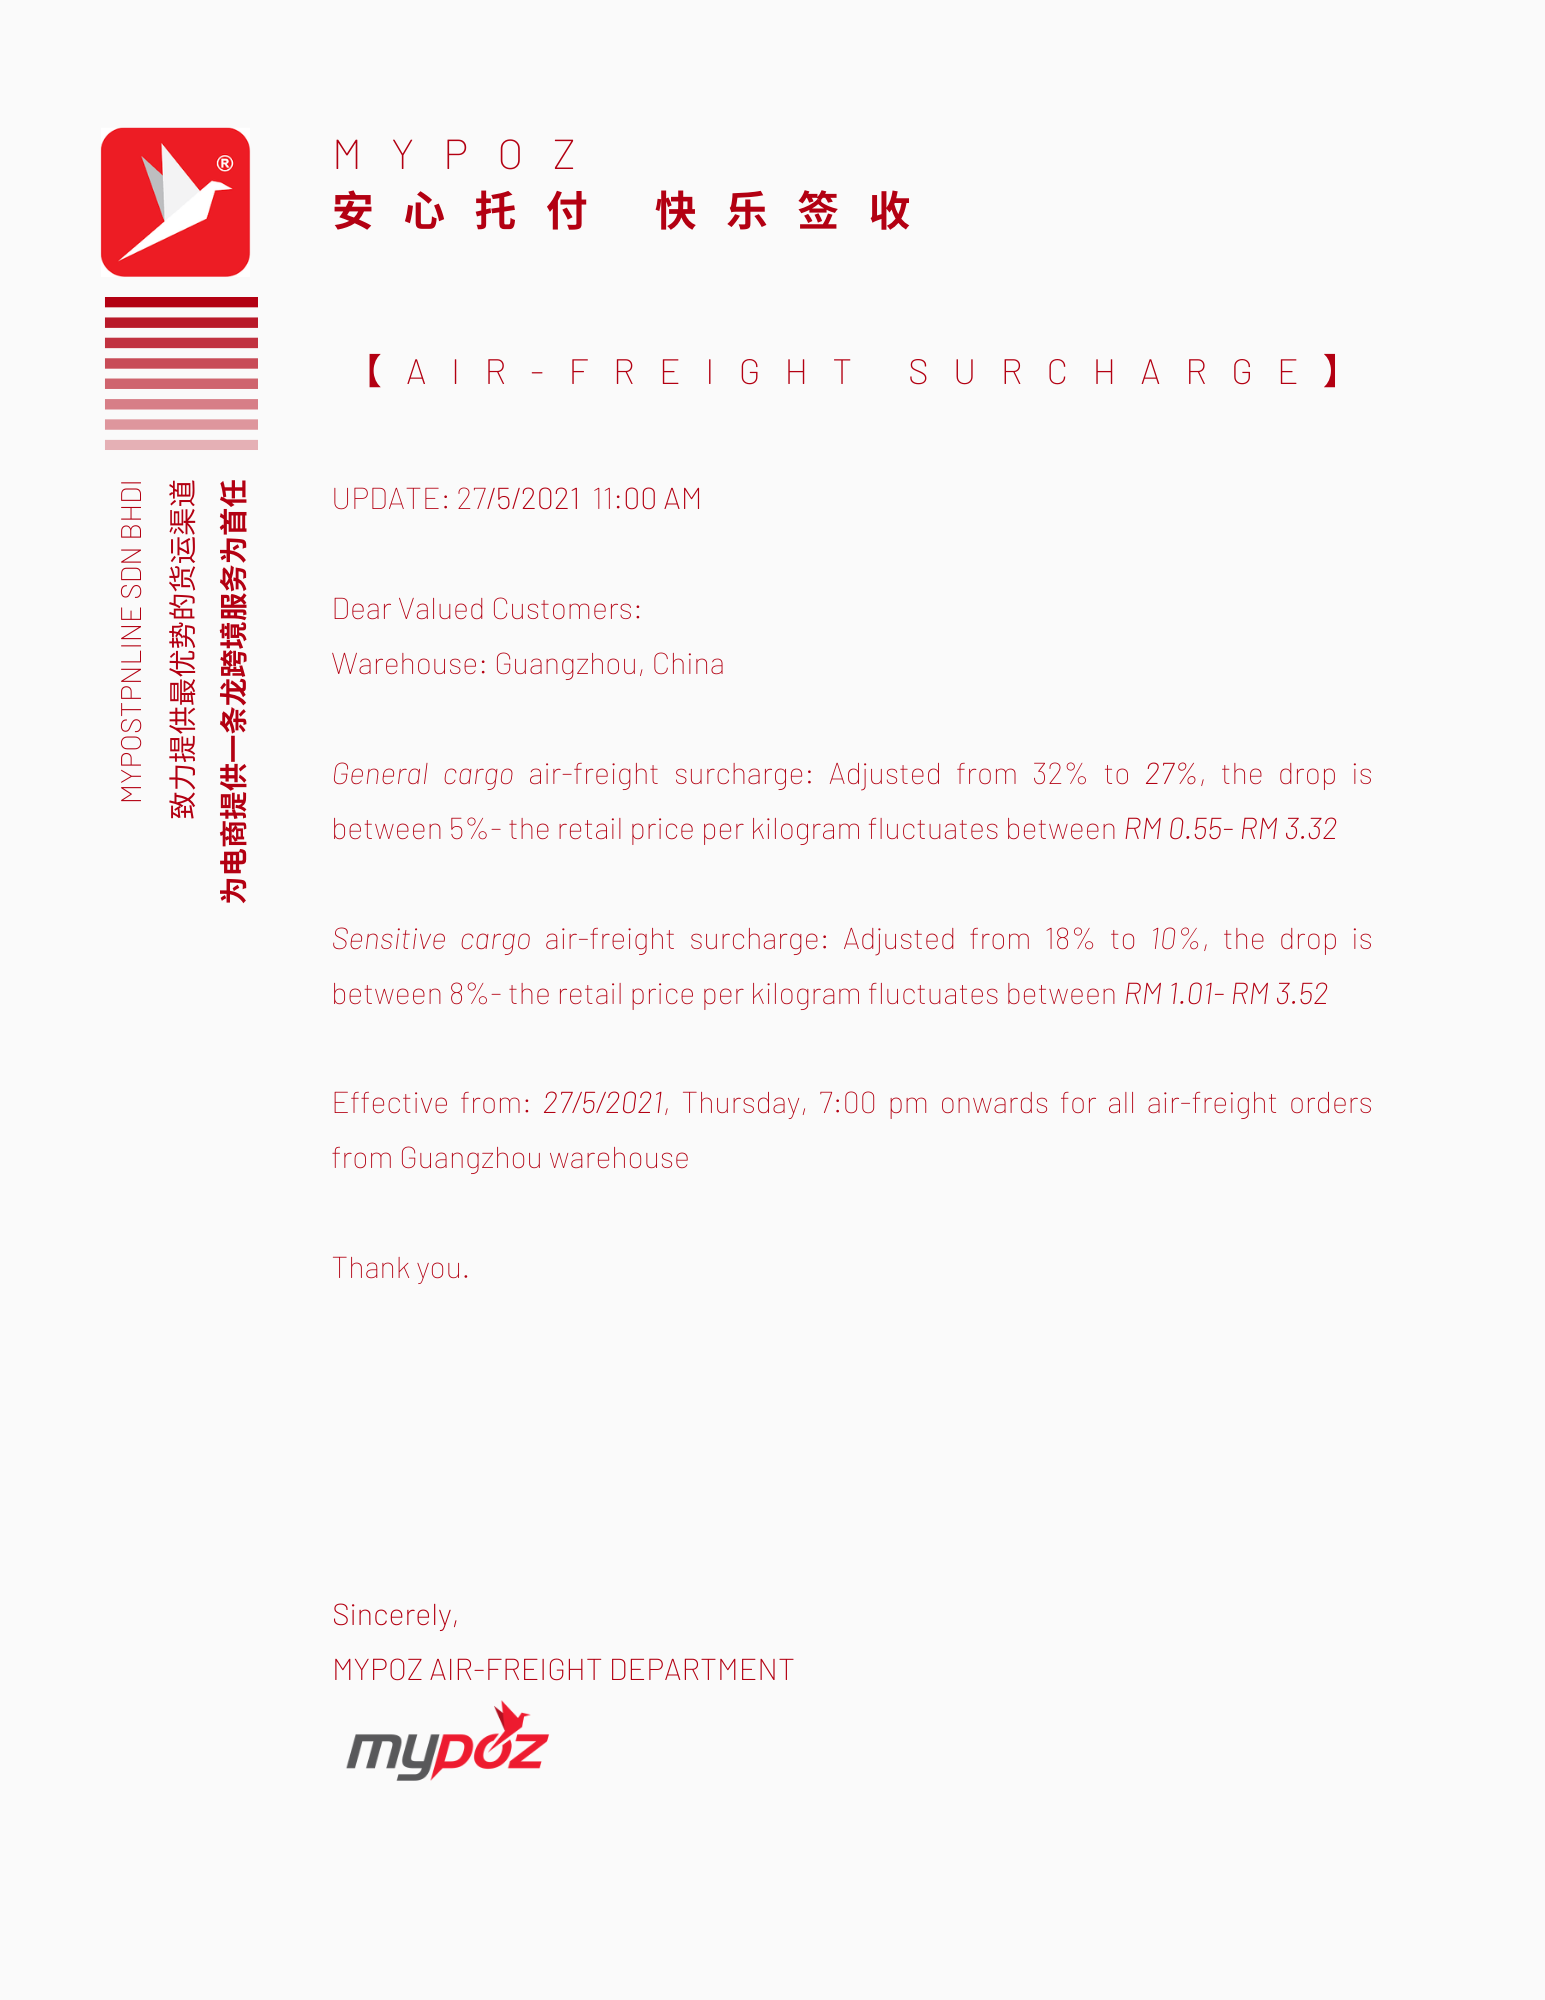 【NOTICE】AIR-FREIGHT SURCHARGE